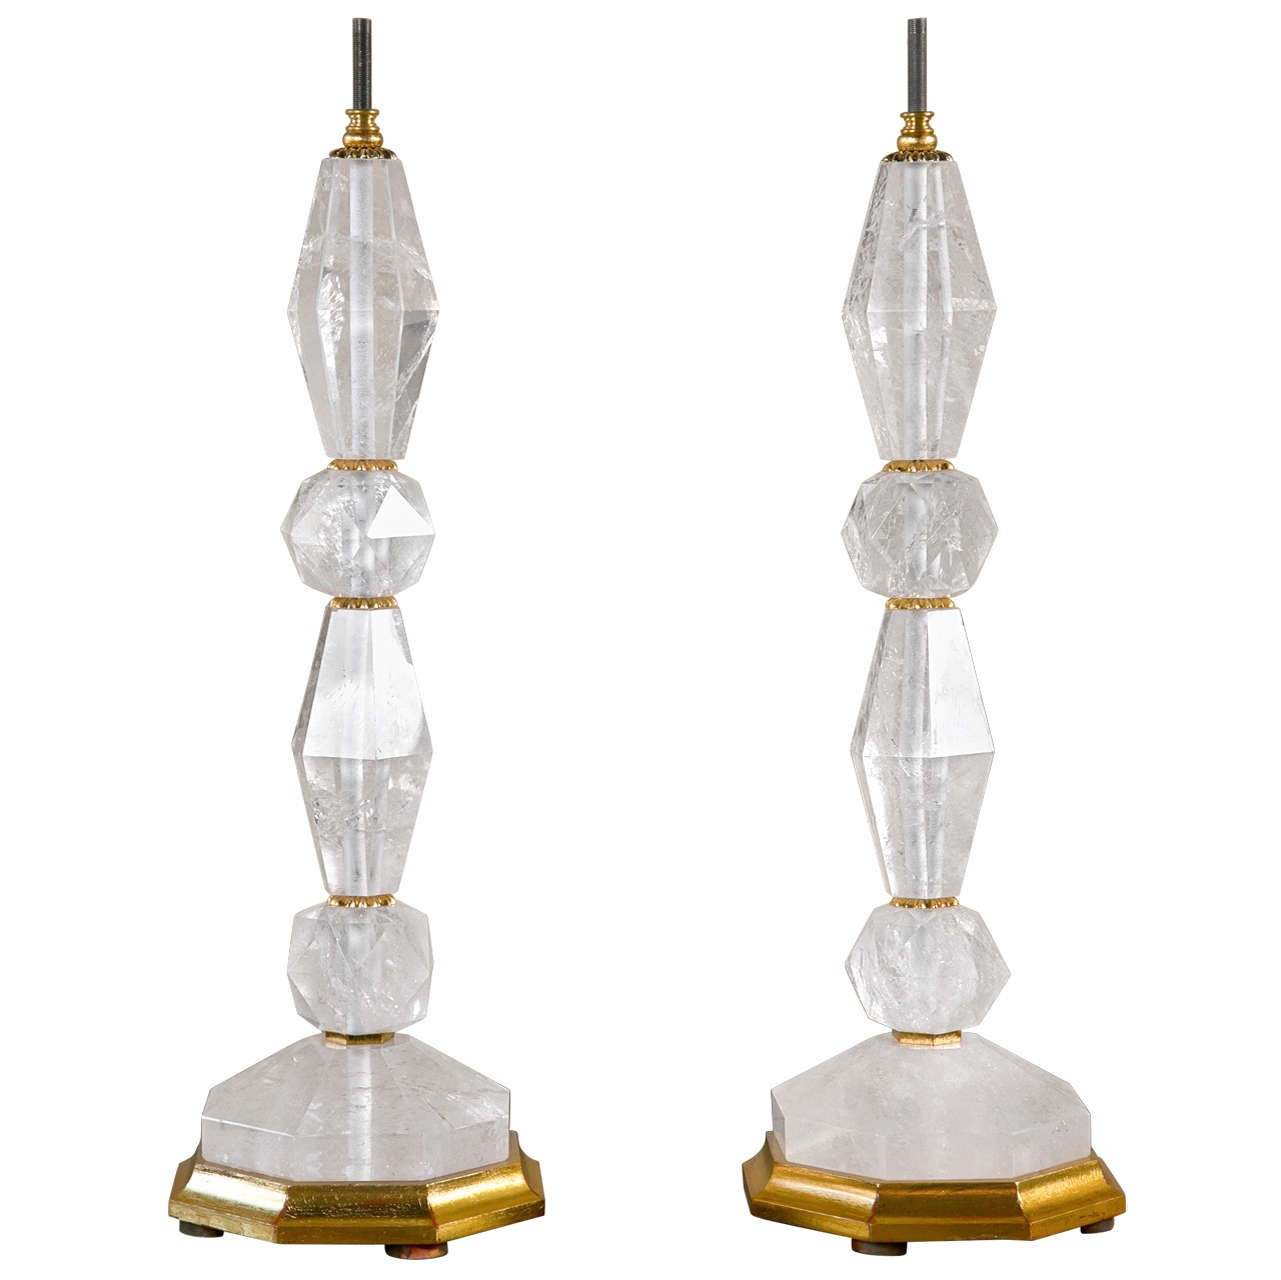 Pair of rock crystal table lamp bases at 1stdibs for Rock lamp